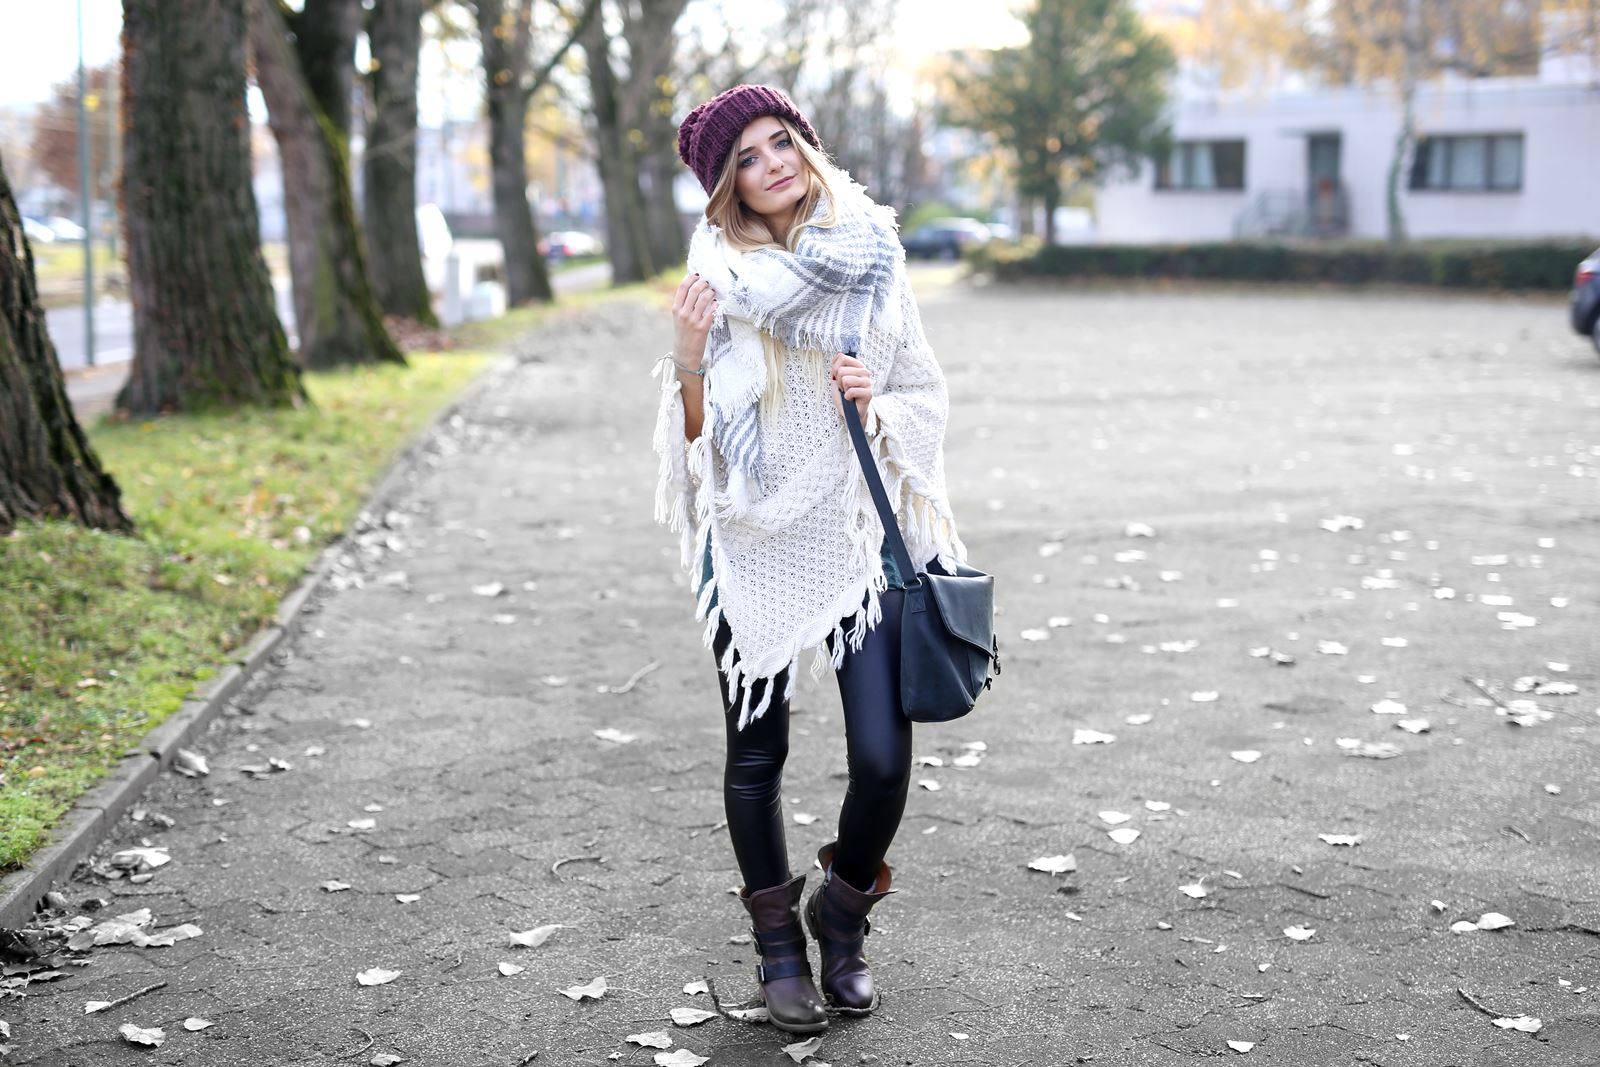 modeblog-german-fashion-blog-herbst-outfit-poncho-xxl-schal-3